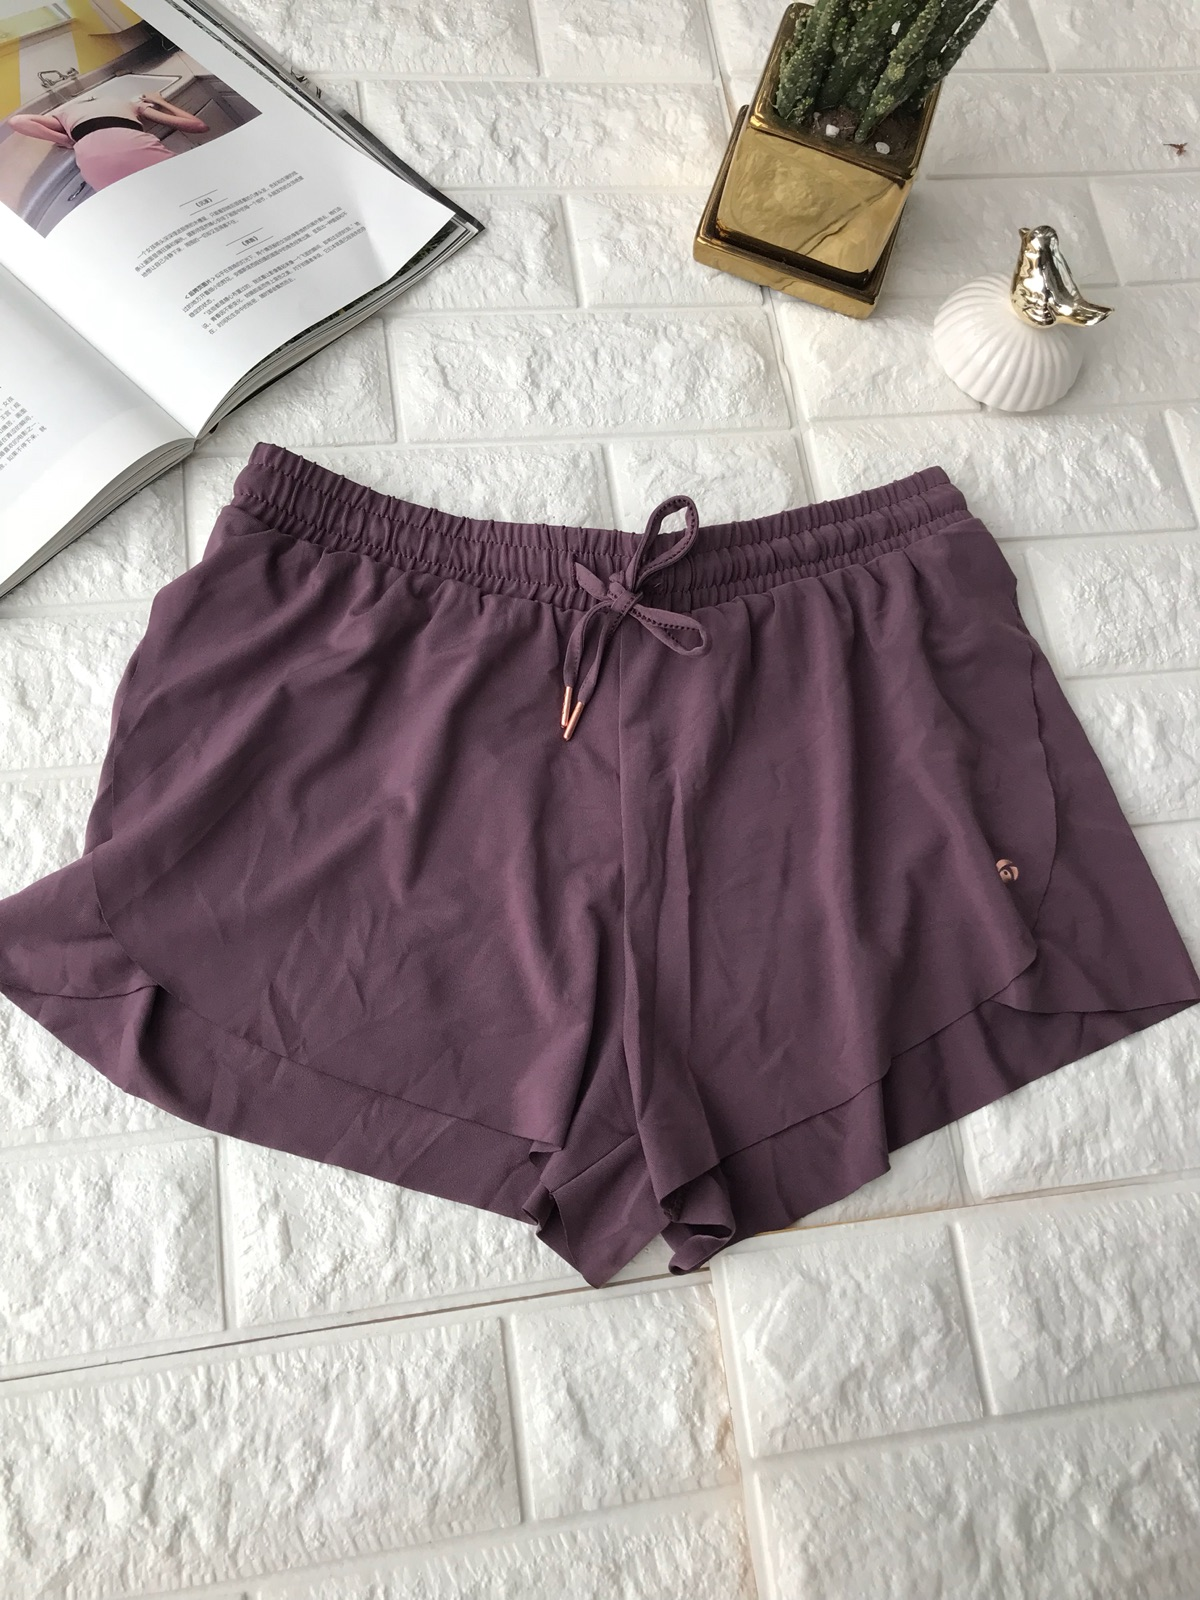 Sports pants / shorts violet two hundred and one thousand eight hundred and six seventeen thousand eight hundred and thirty-eight Two hundred female XS S M L